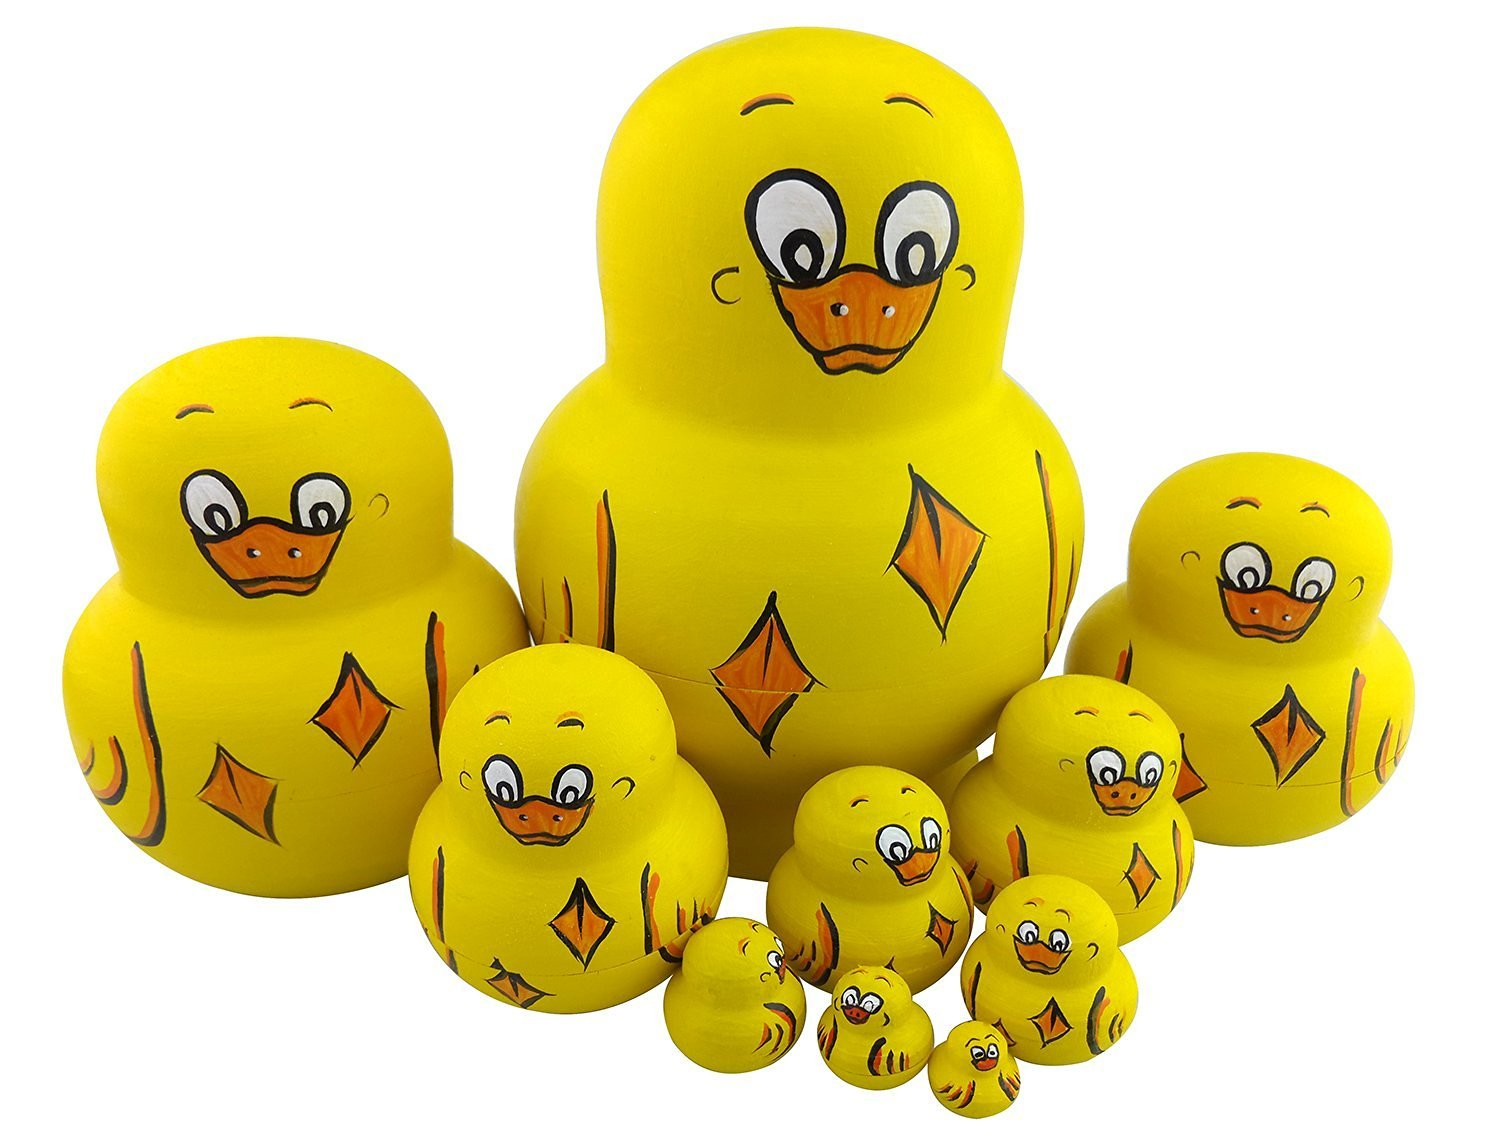 Unigift Cute Lovely Animal Yellow Duck Handmade Wooden Russian Nesting Dolls Matryoshka Dolls Set 10 Pieces for Kids Toy Home Decoration by Unigift